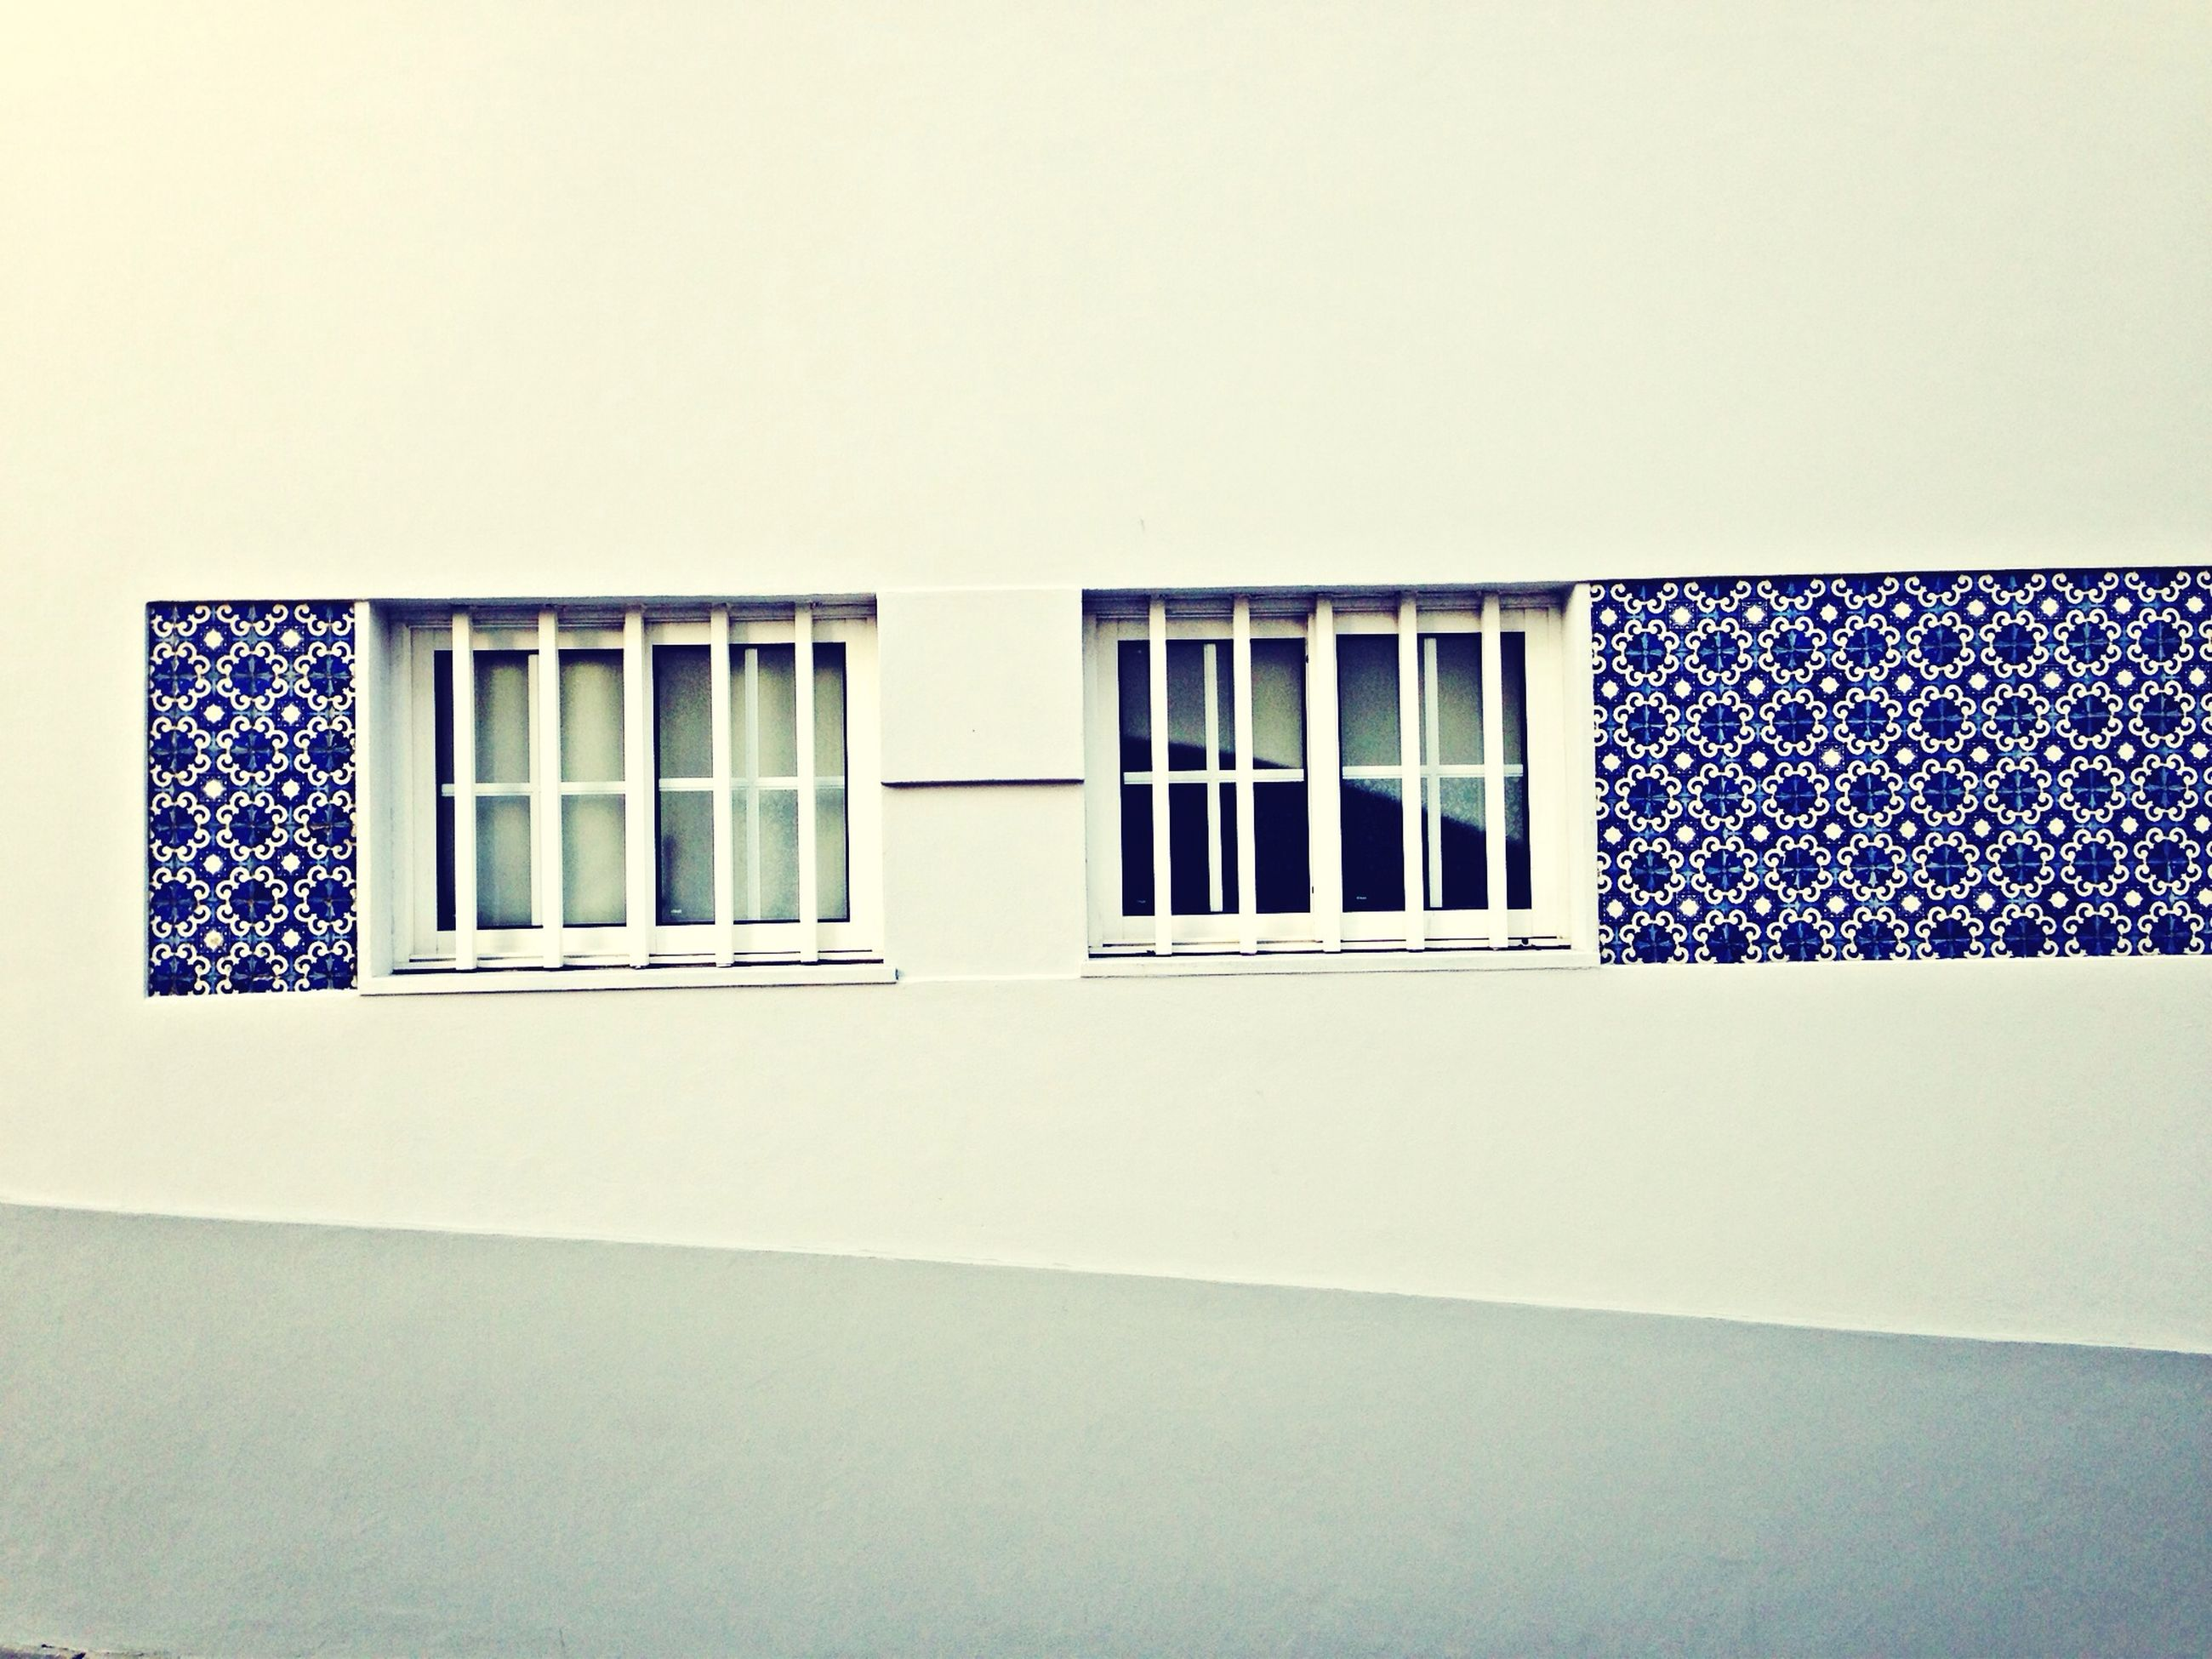 window, architecture, built structure, copy space, building exterior, clear sky, indoors, wall, glass - material, wall - building feature, blue, pattern, house, no people, design, geometric shape, building, day, closed, in a row